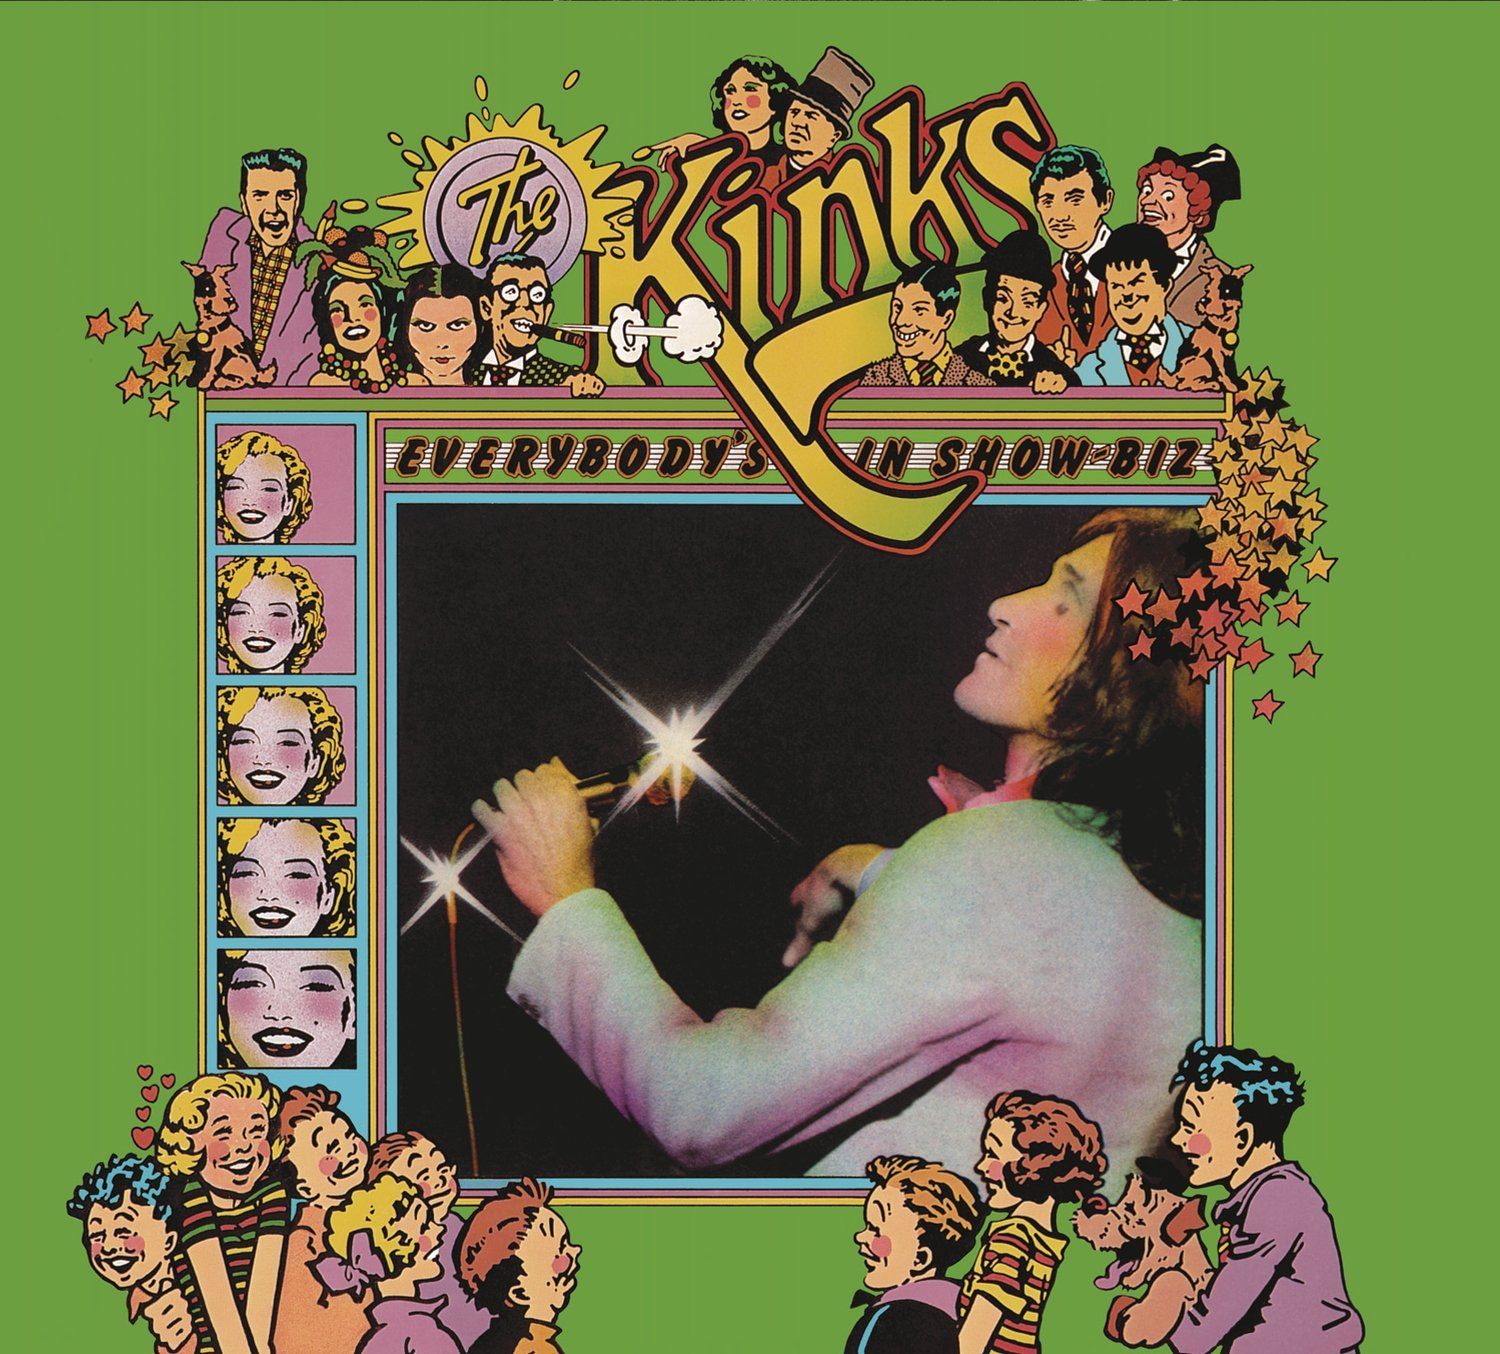 The-Kinks-Everybodys-In-Showbiz